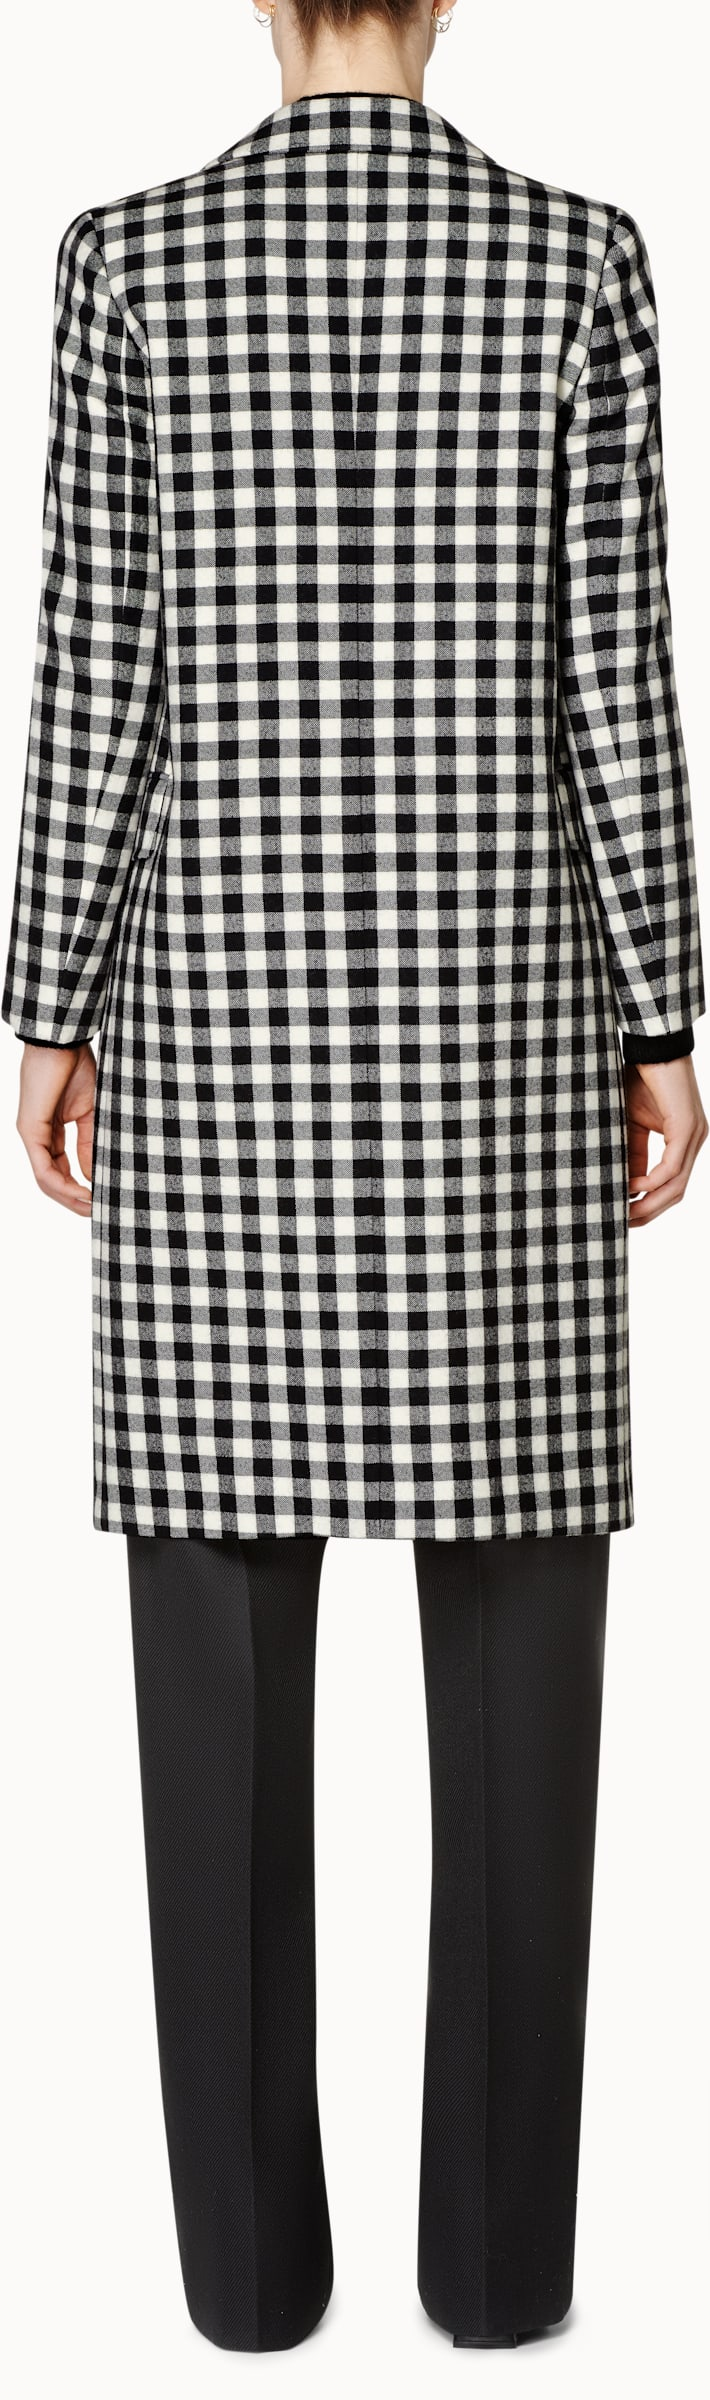 Alia Black & White Checked Coat